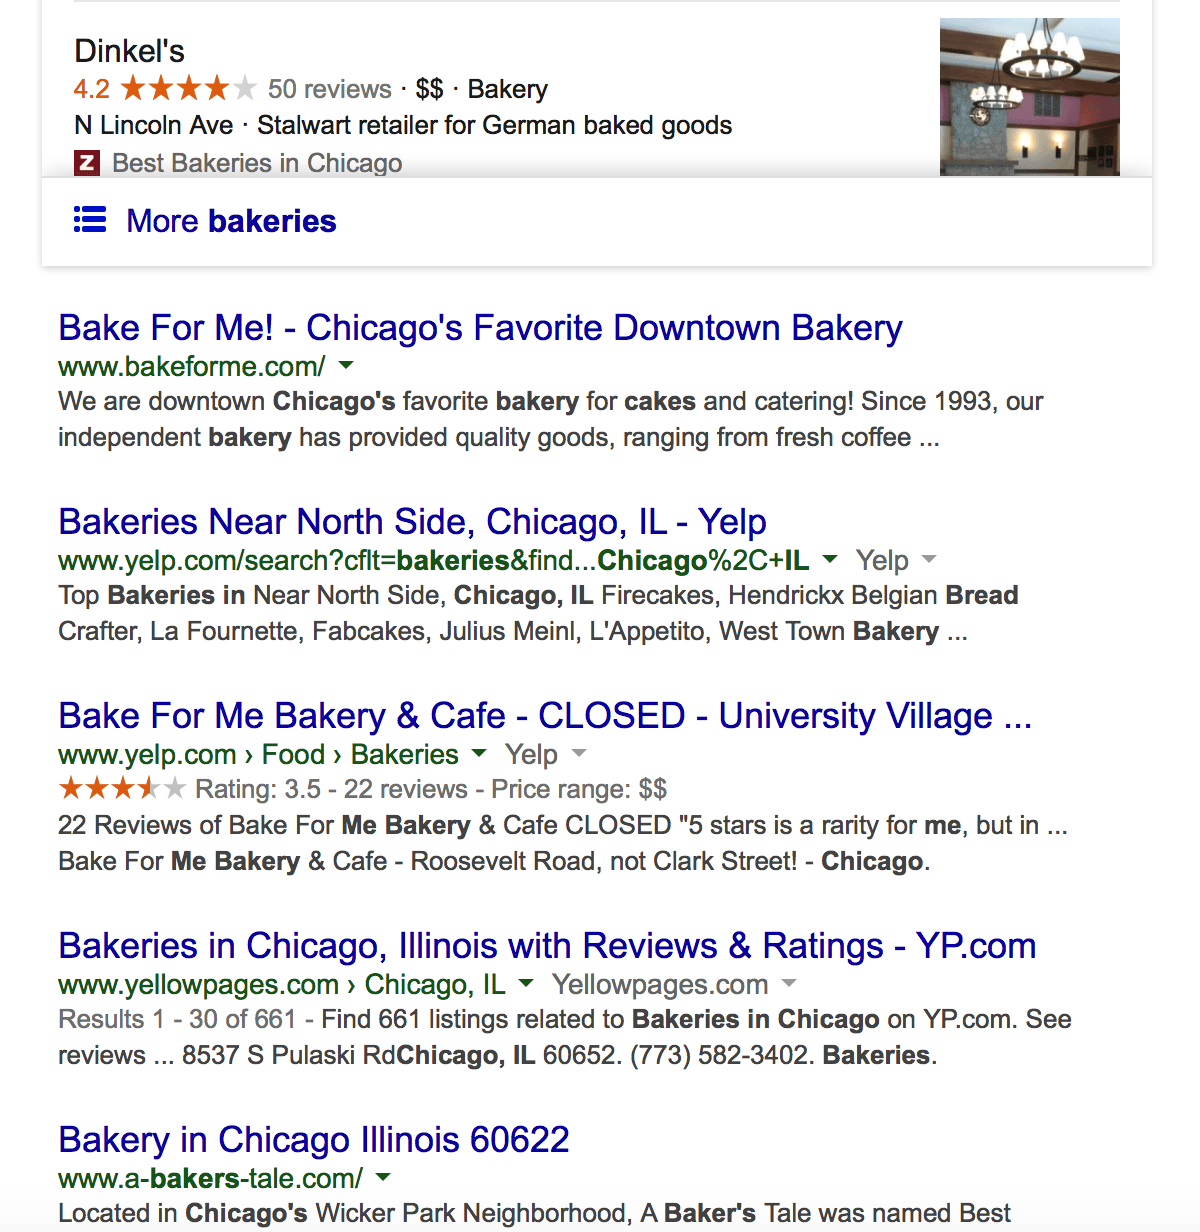 The-Ultimate-Guide-To-Local-SEO-1